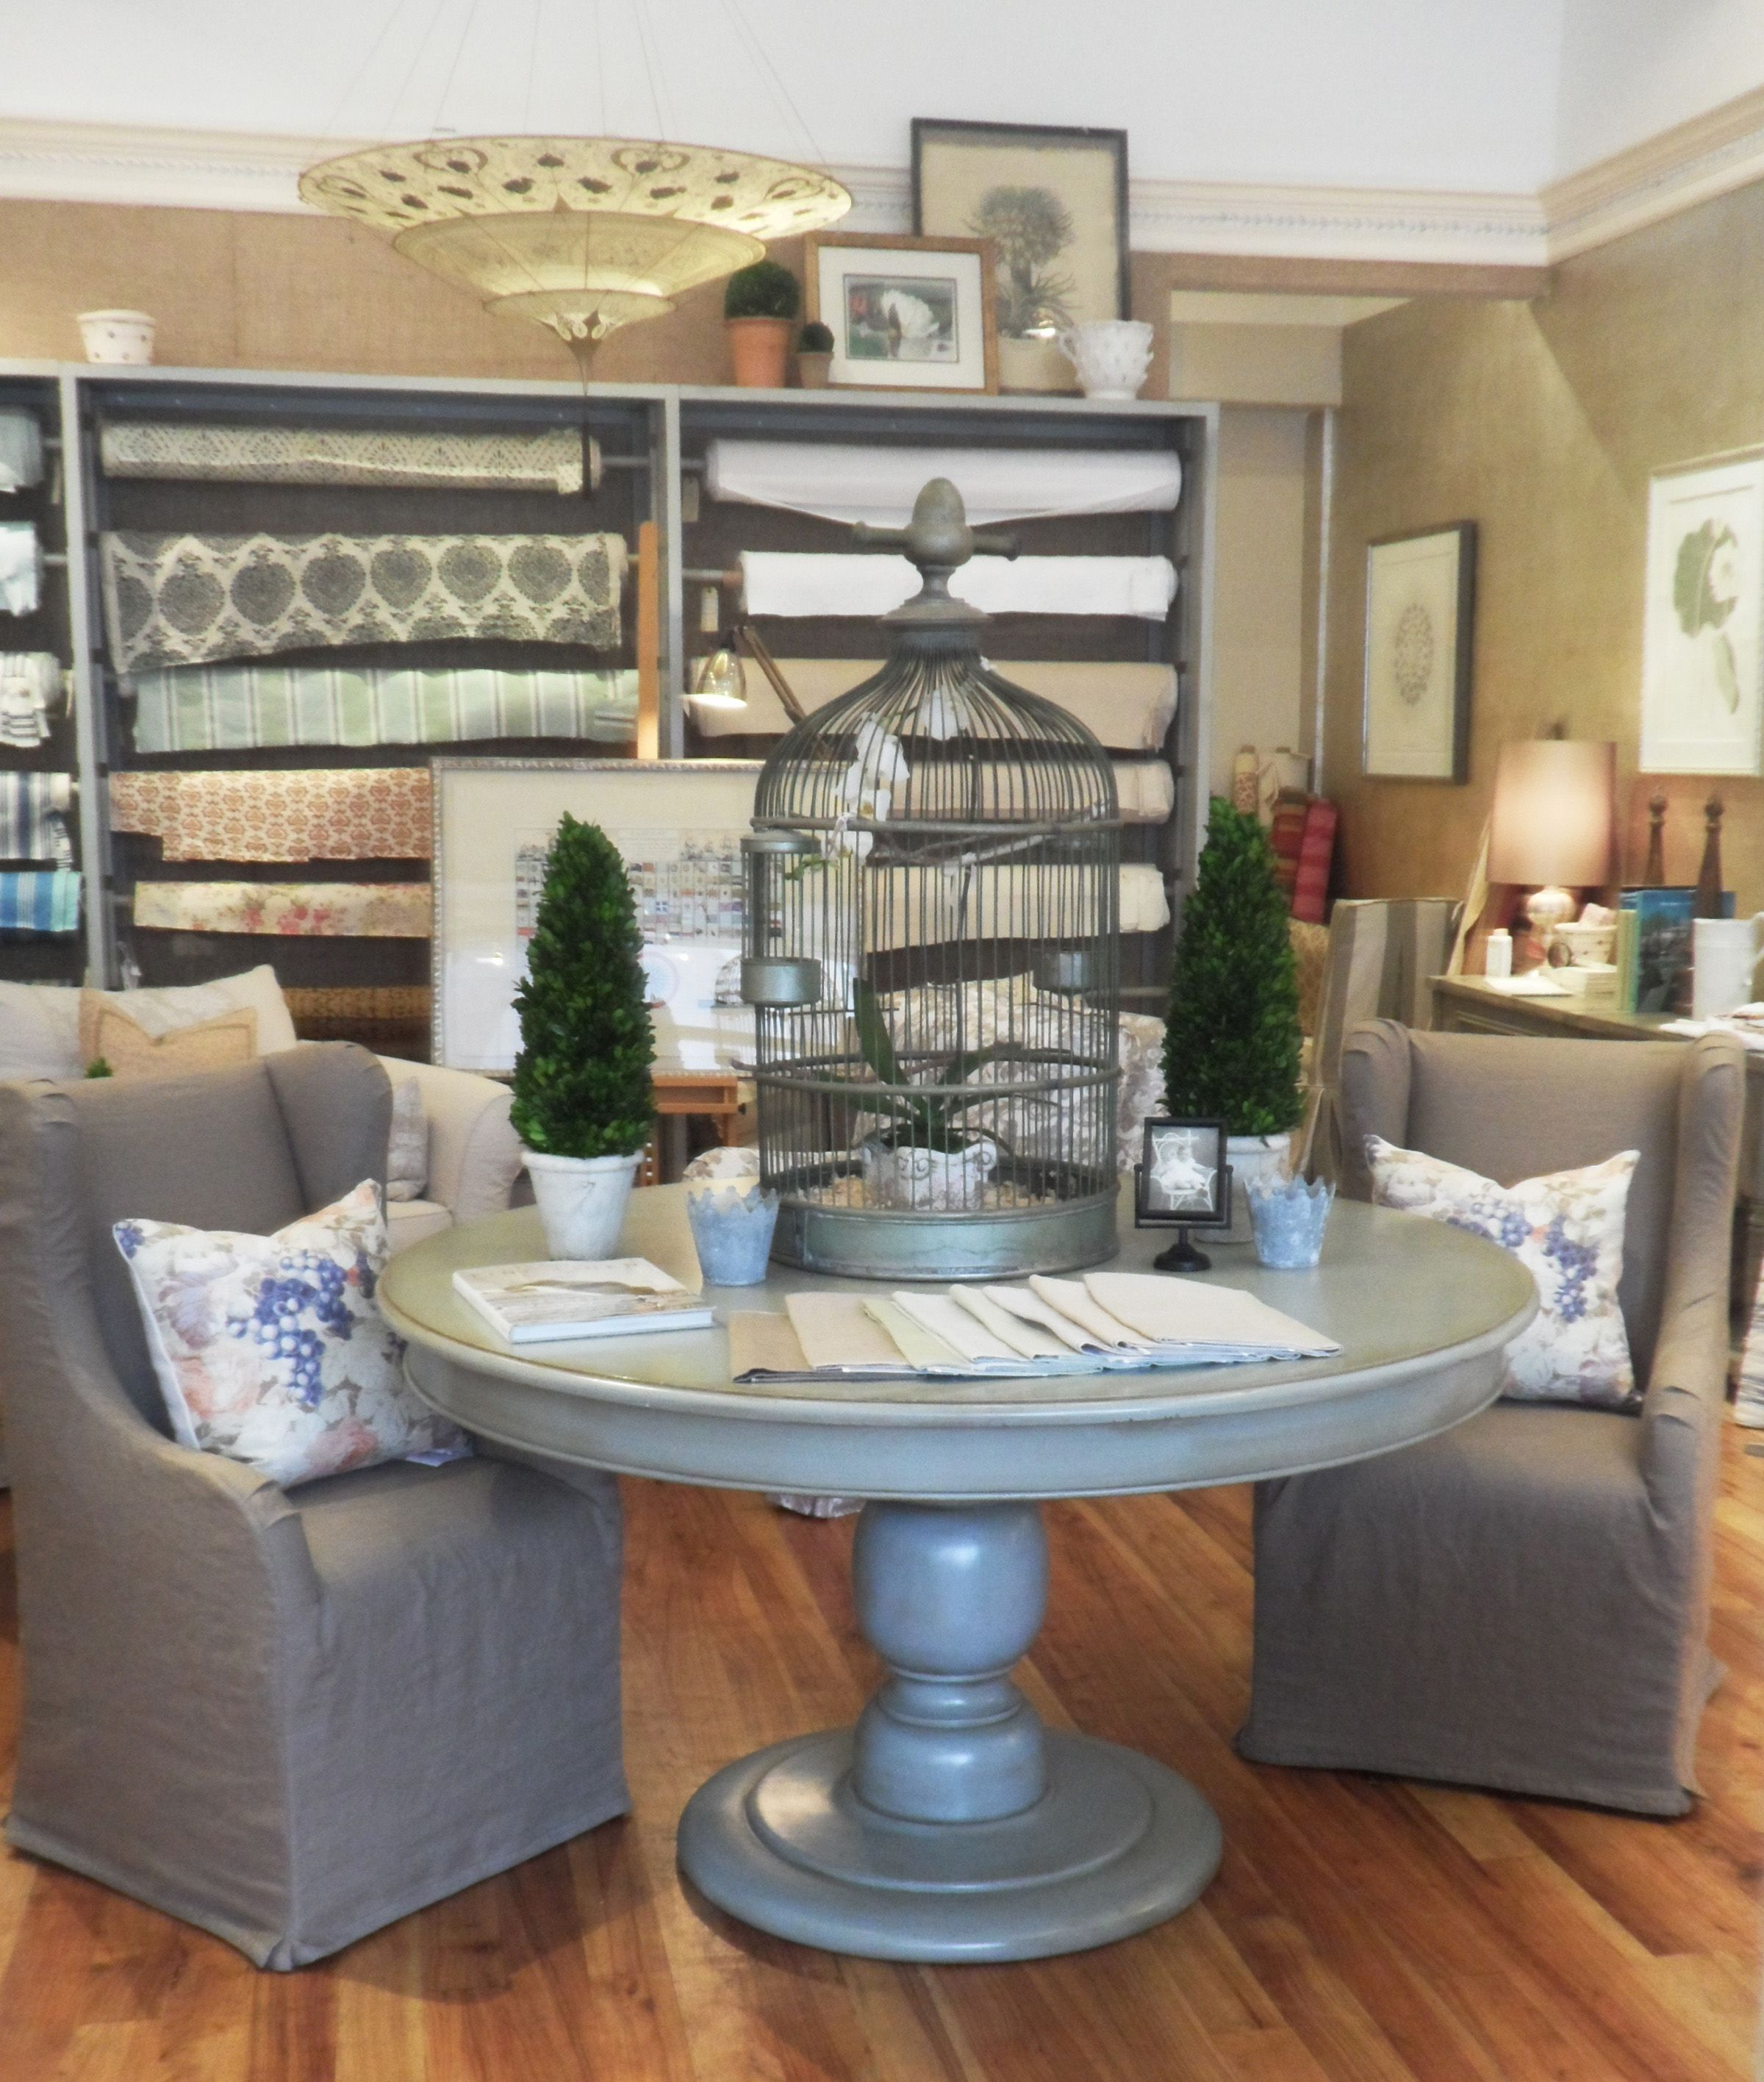 Captain Chairs Around Our Iveston Dining Table #slipcovered Entrancing Captain Chairs For Dining Room Decorating Inspiration